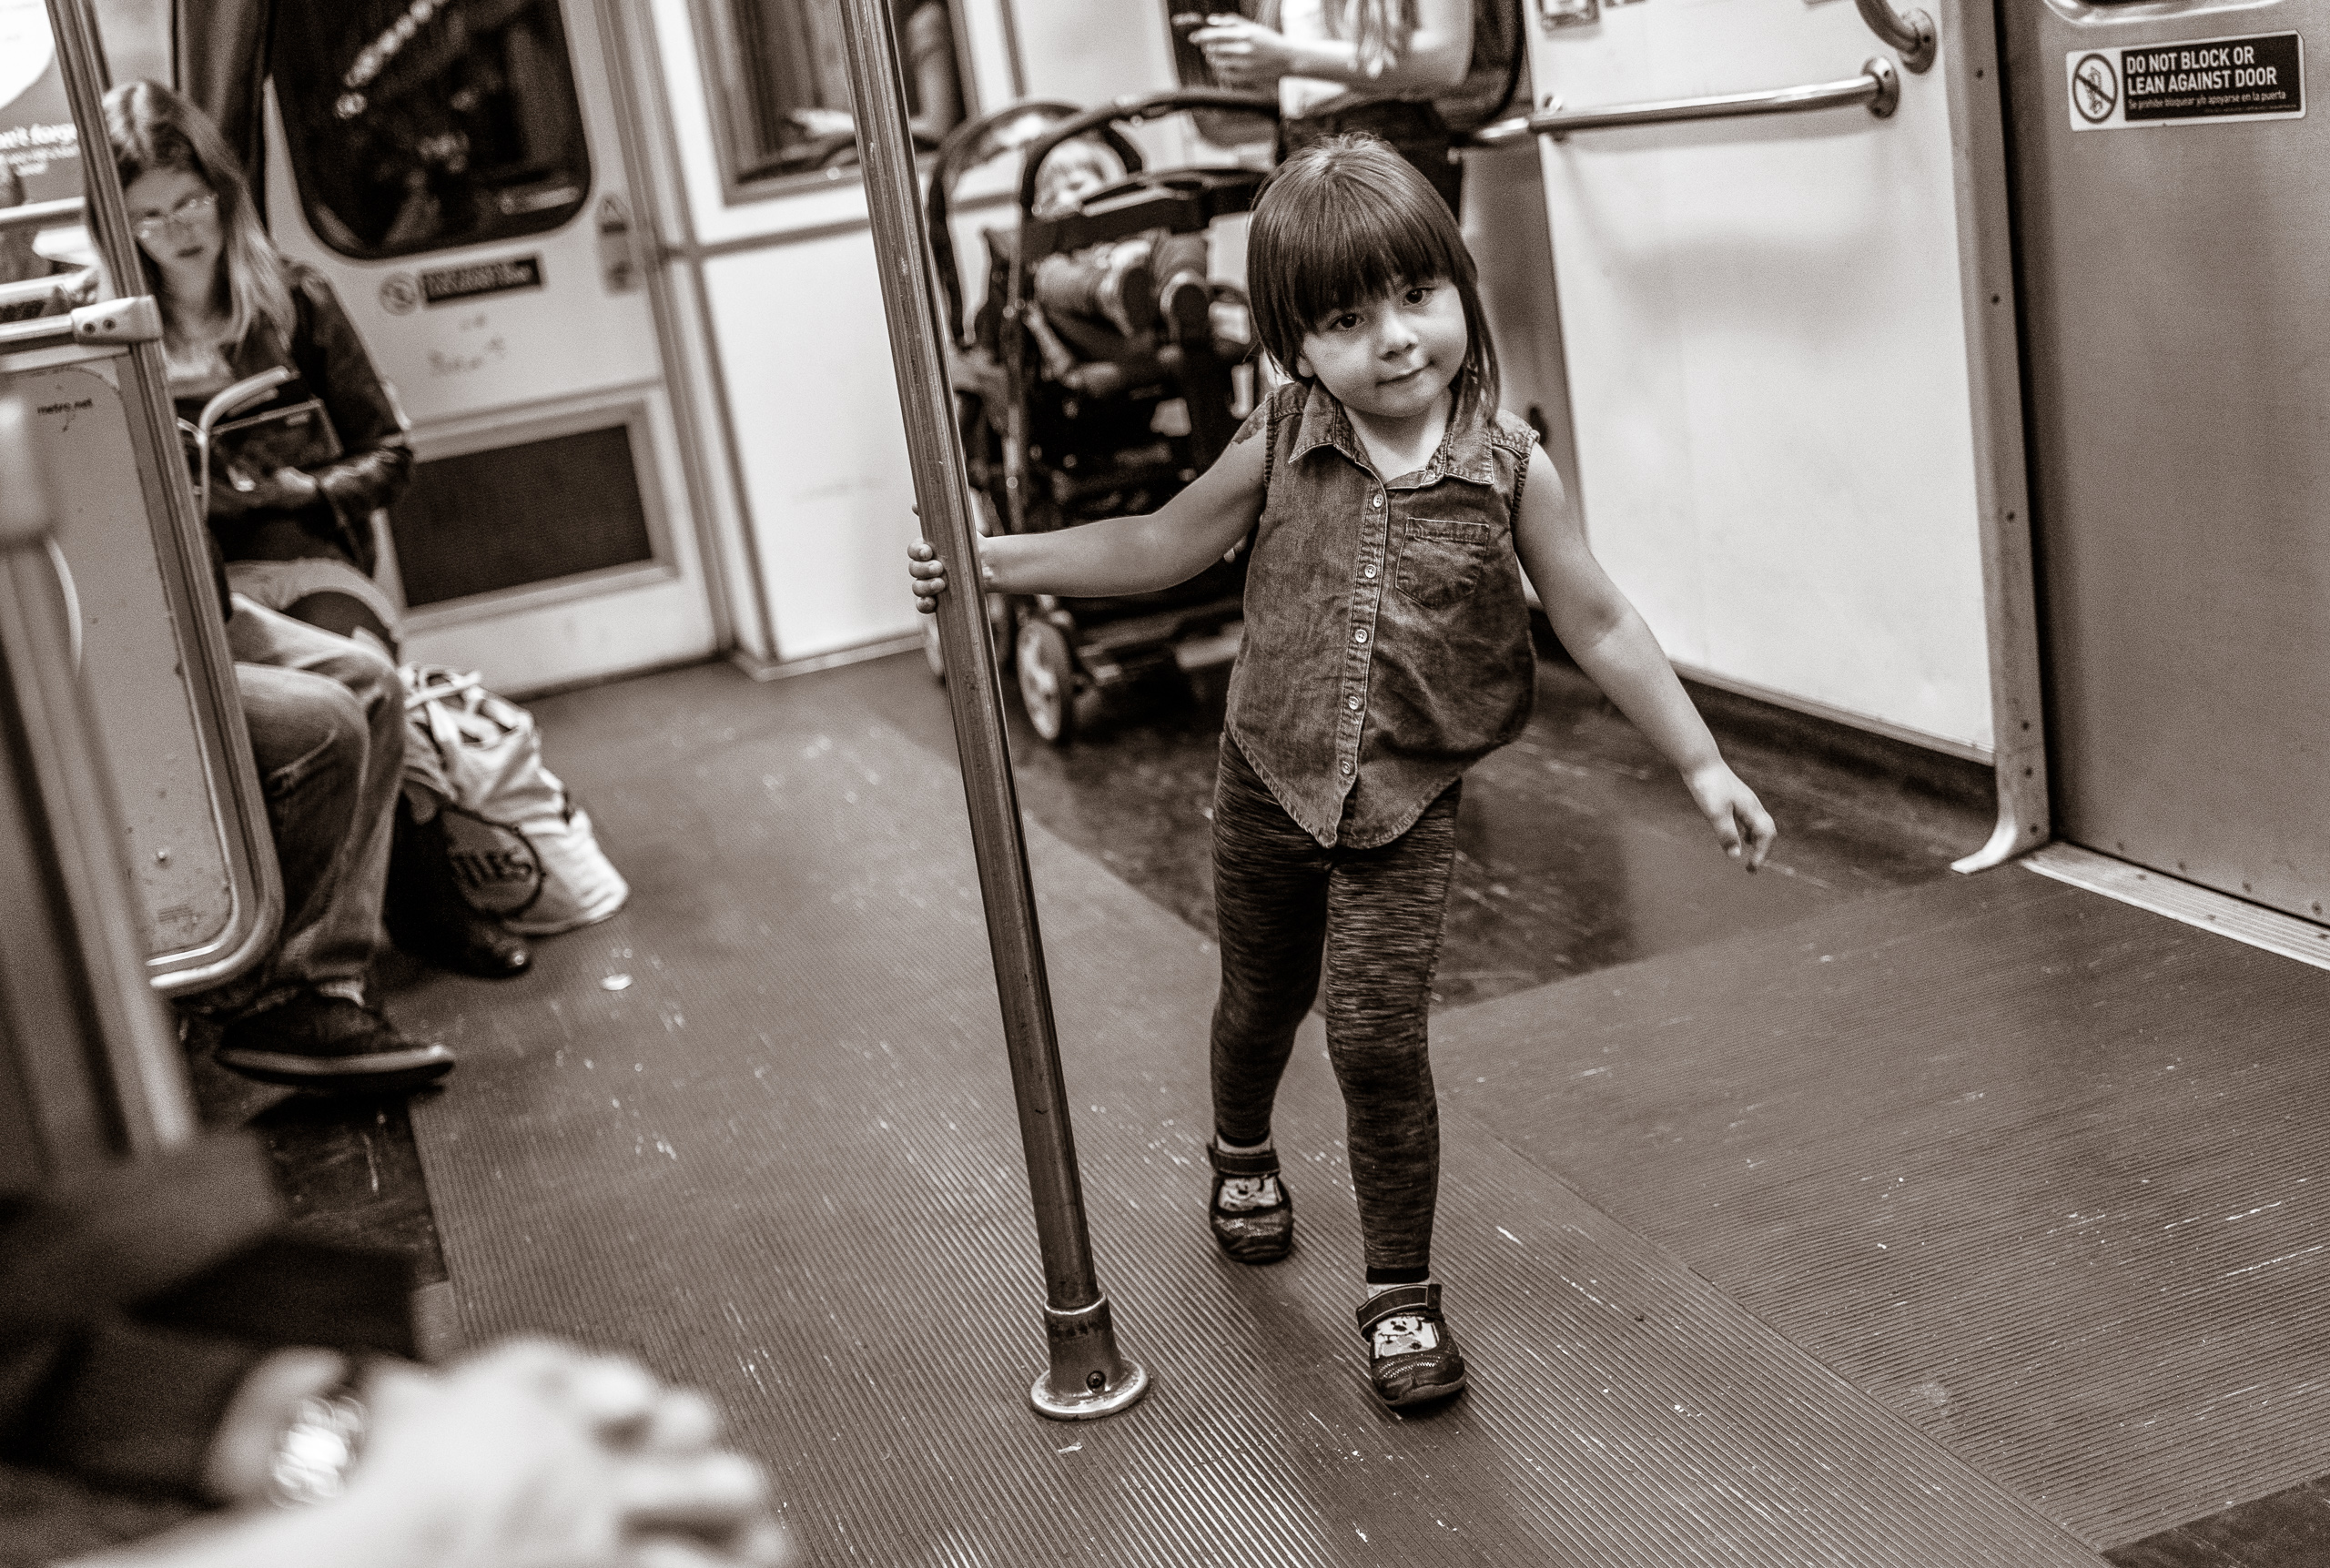 a young girl uses the center pole of the subway train car as a sort of Maypole to spin around as she plays and dances